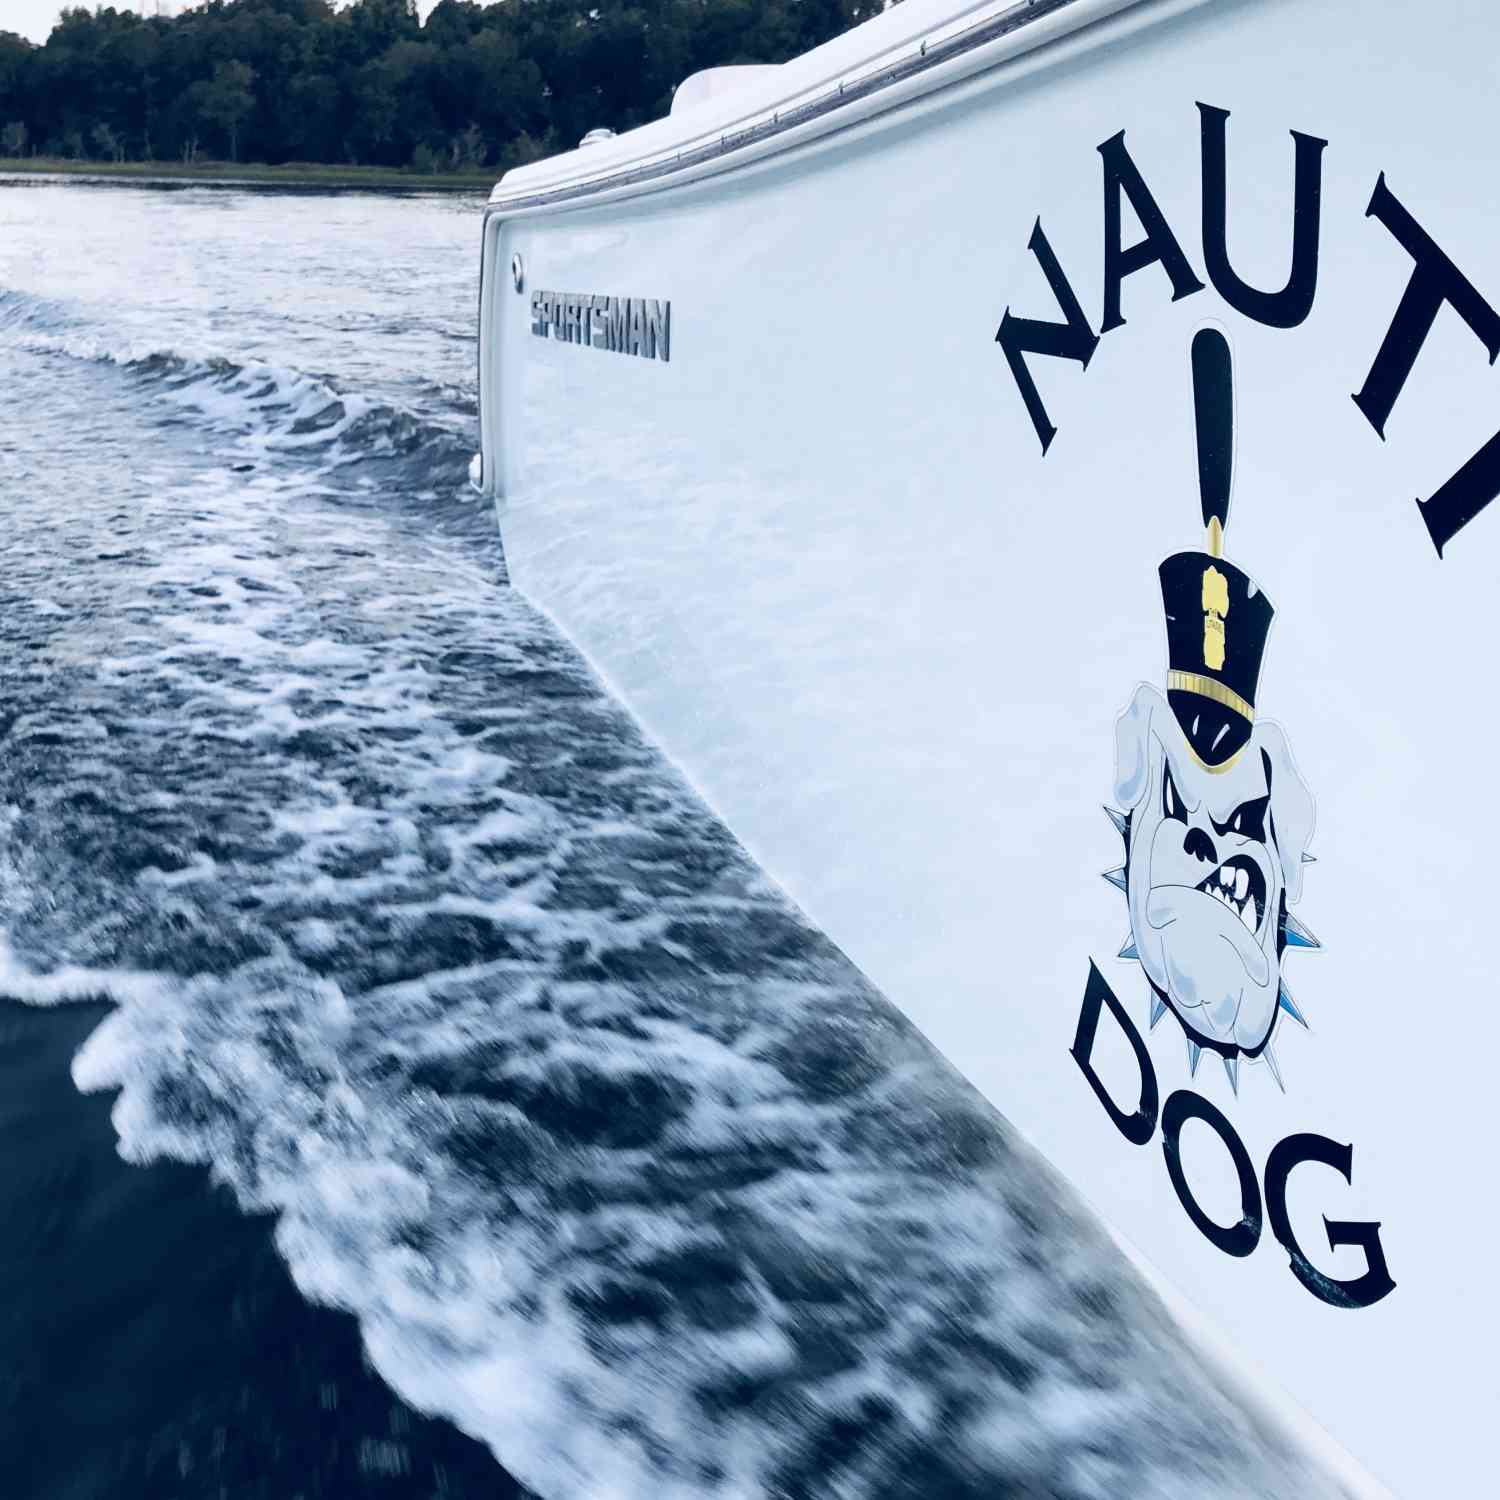 Title: Nauti on a slick morning - On board their Sportsman Heritage 231 Center Console - Location: Daniel Island SC. Participating in the Photo Contest #SportsmanJuly2018